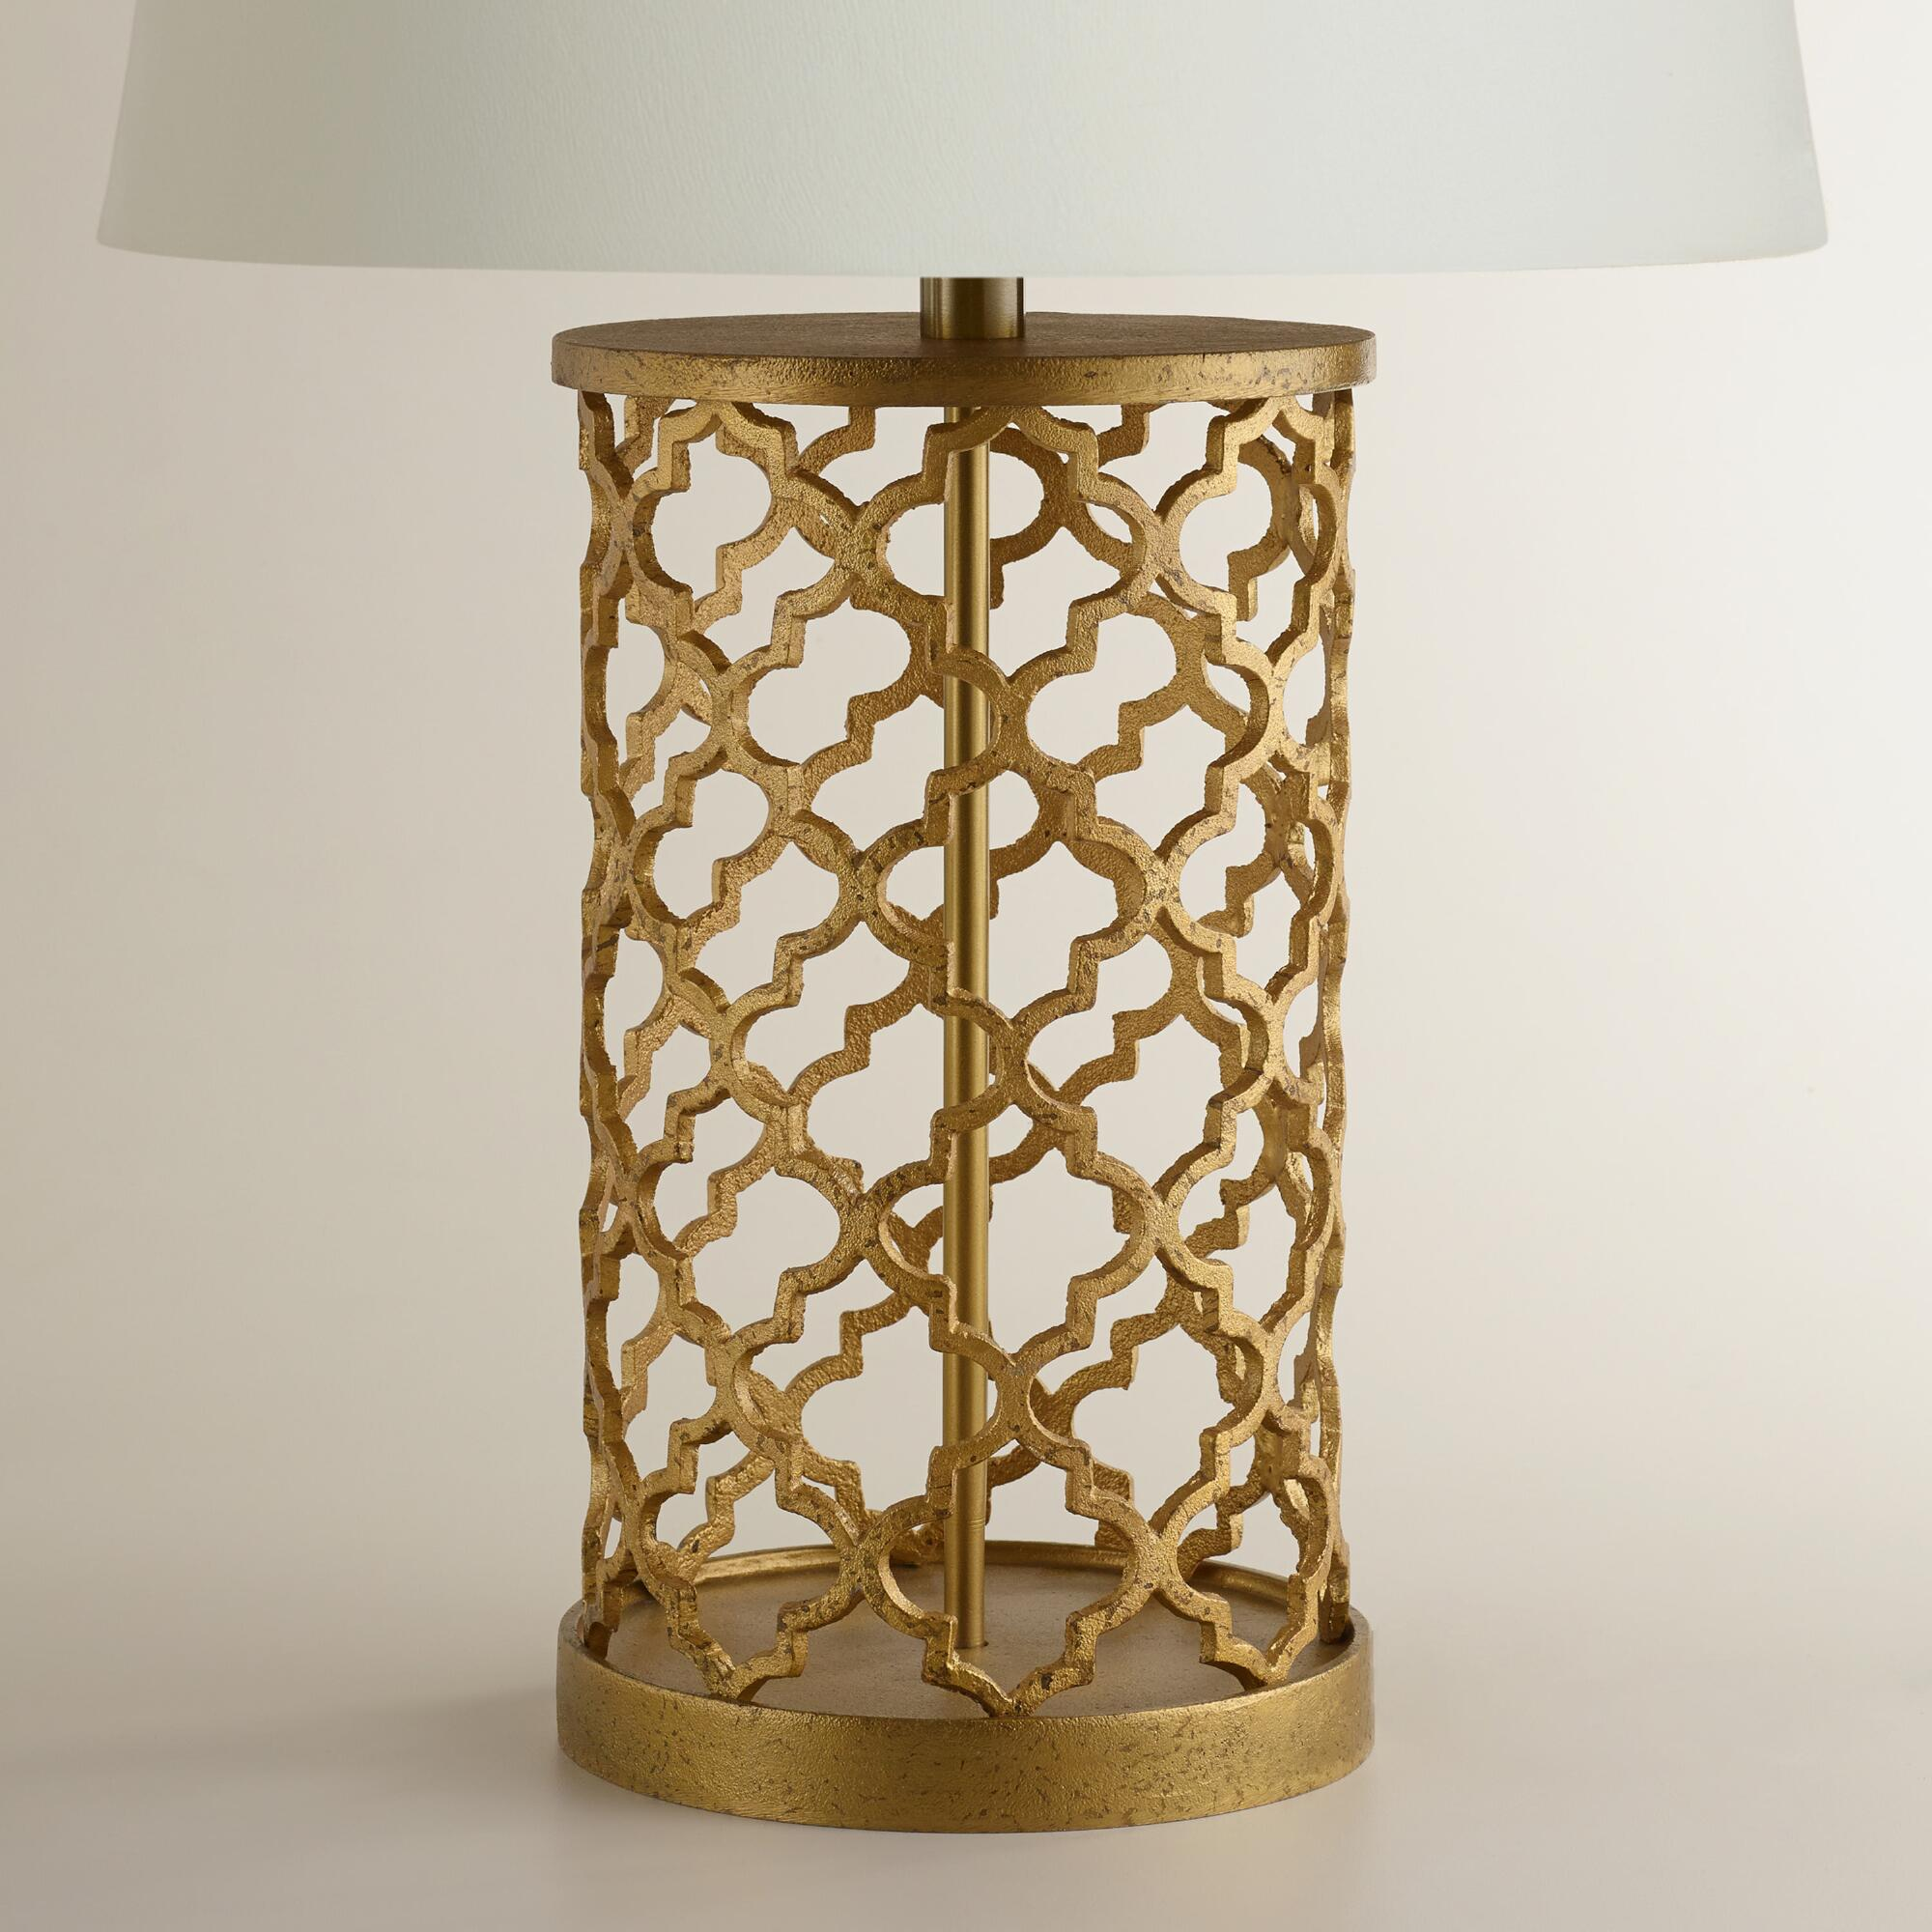 Distressed gold moroccan table lamp base online interior design distressed gold moroccan table lamp base aloadofball Images